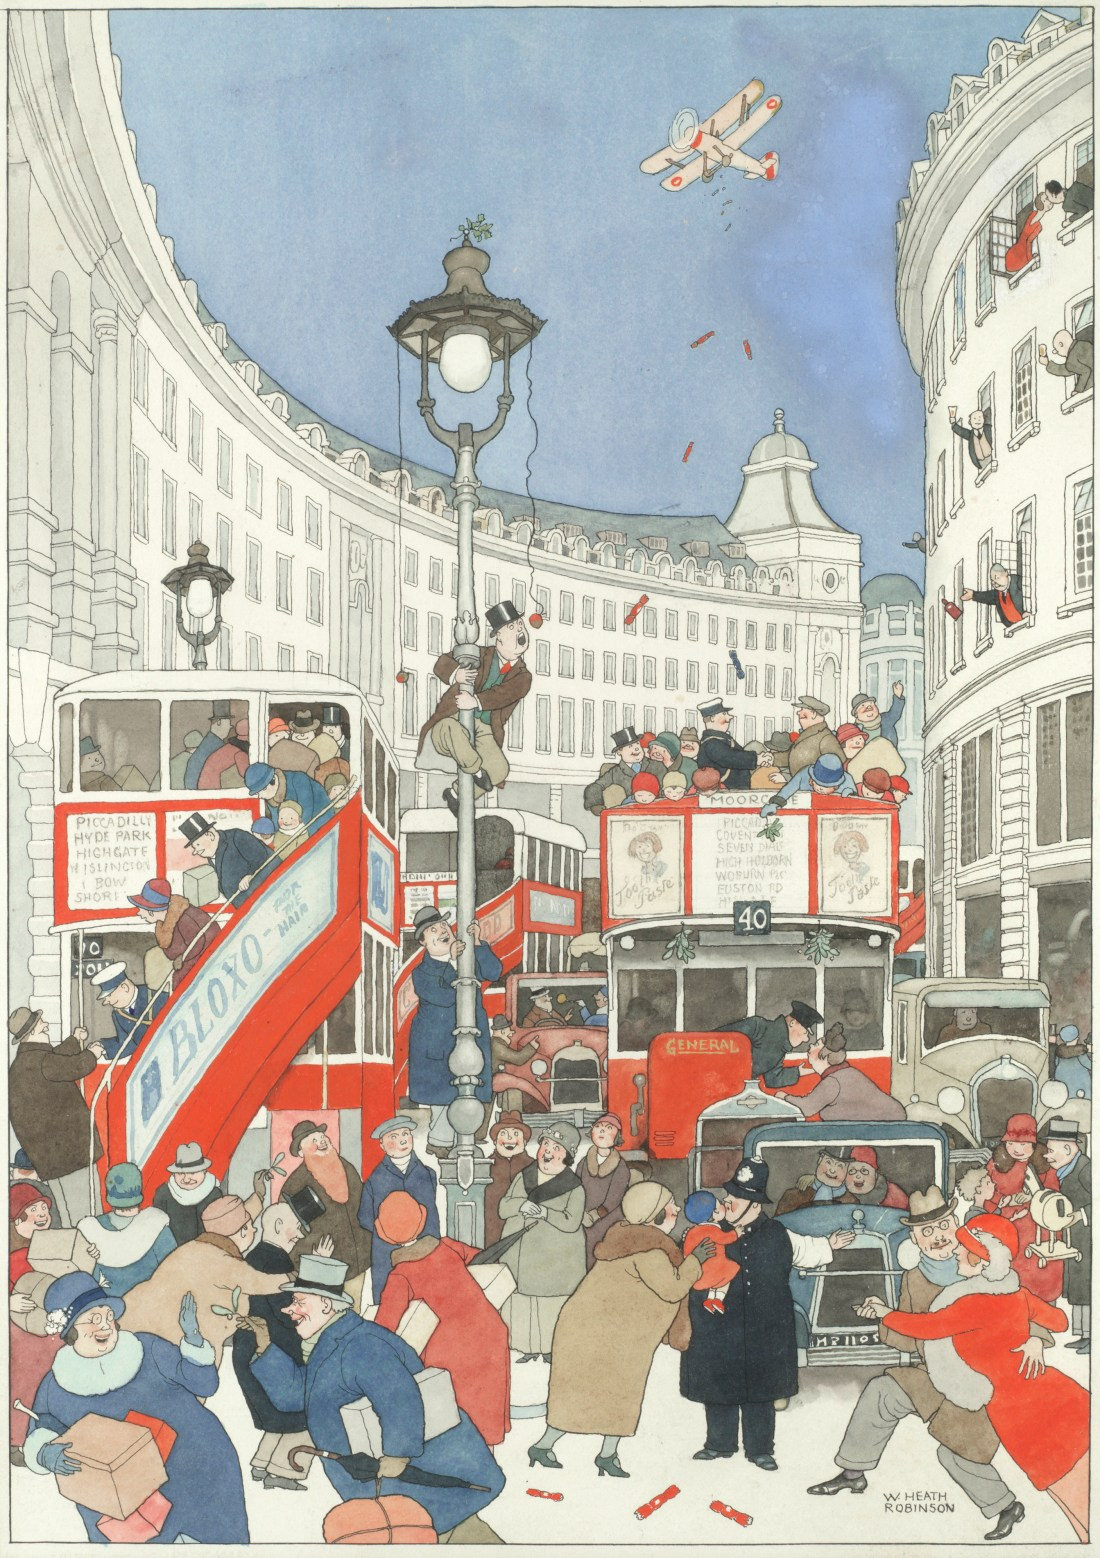 WILLIAM HEATH ROBINSON (BRITISH, 1872-1944) The Spirit of Christmas in Regent Street signed 'W. HEATHROBINSON' (lower right) pen and ink and watercolour 43 x 30cm (16 1516 x 11 1316in).